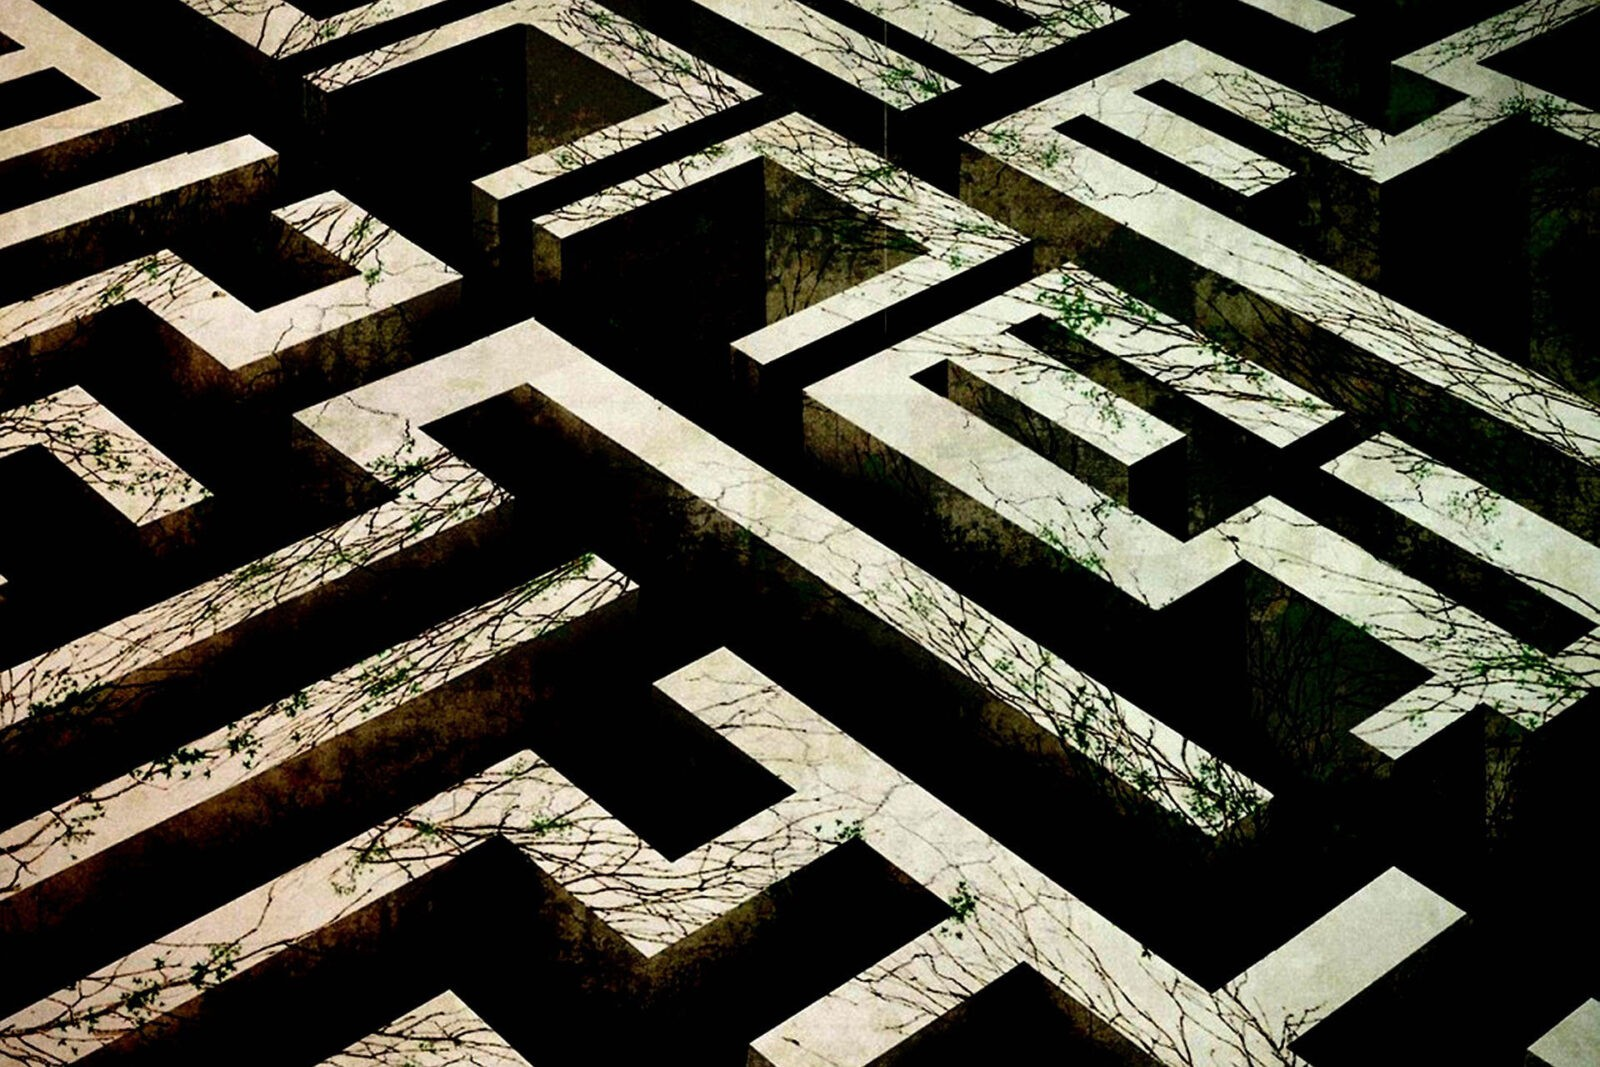 the maze runner The maze runner study guide contains a biography of james dashner, literature essays, quiz questions, major themes, characters, and a full summary and analysis.